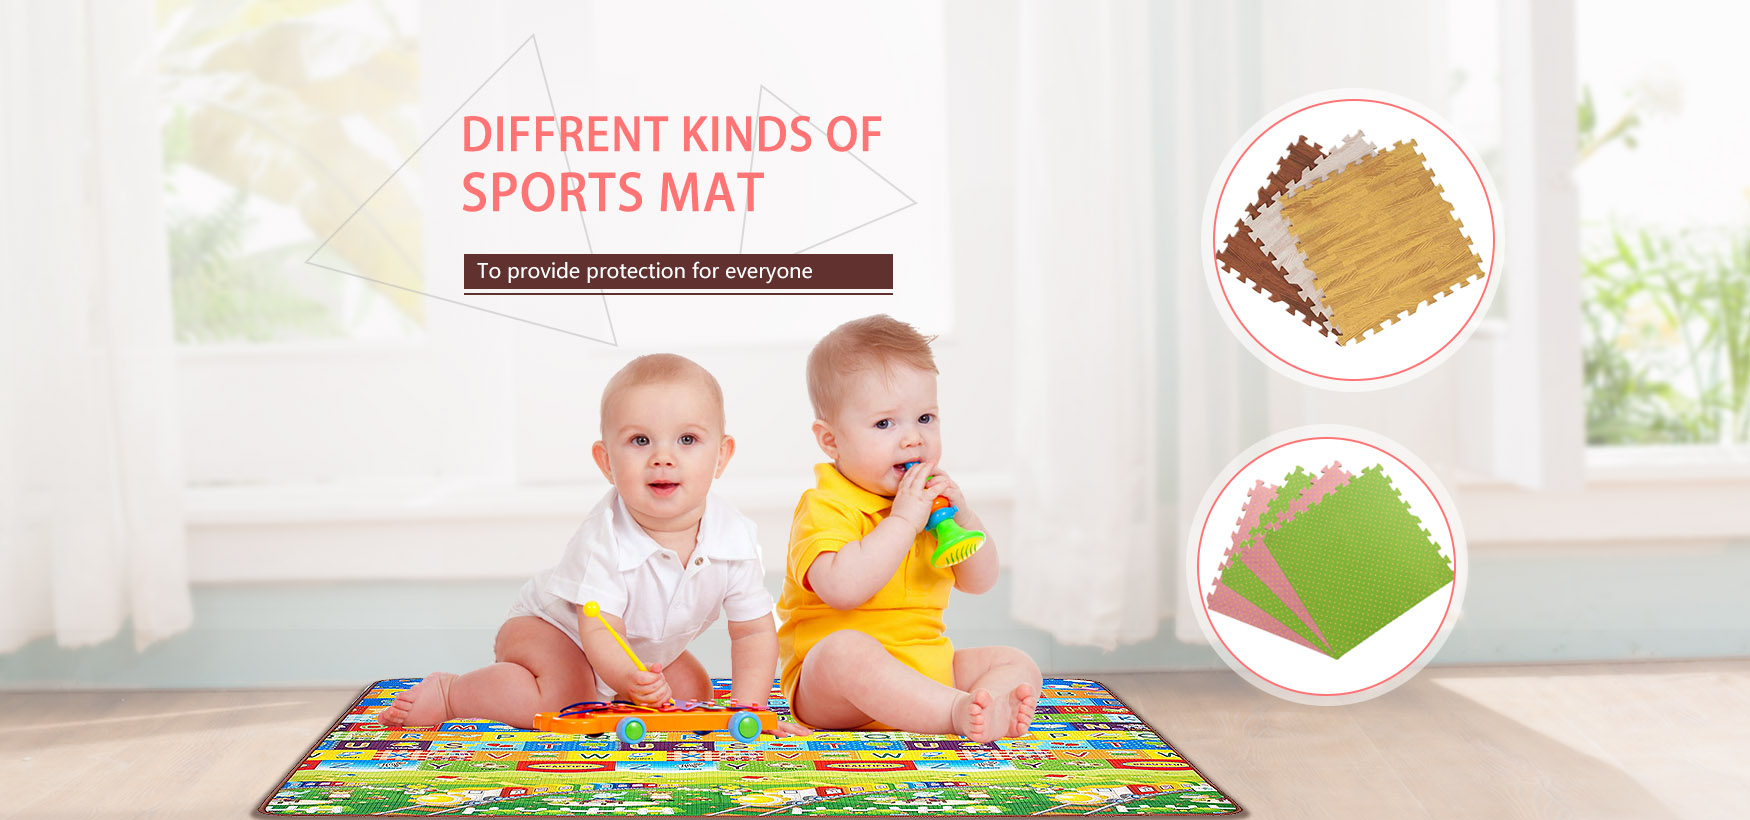 diffrent kinds of sports mat